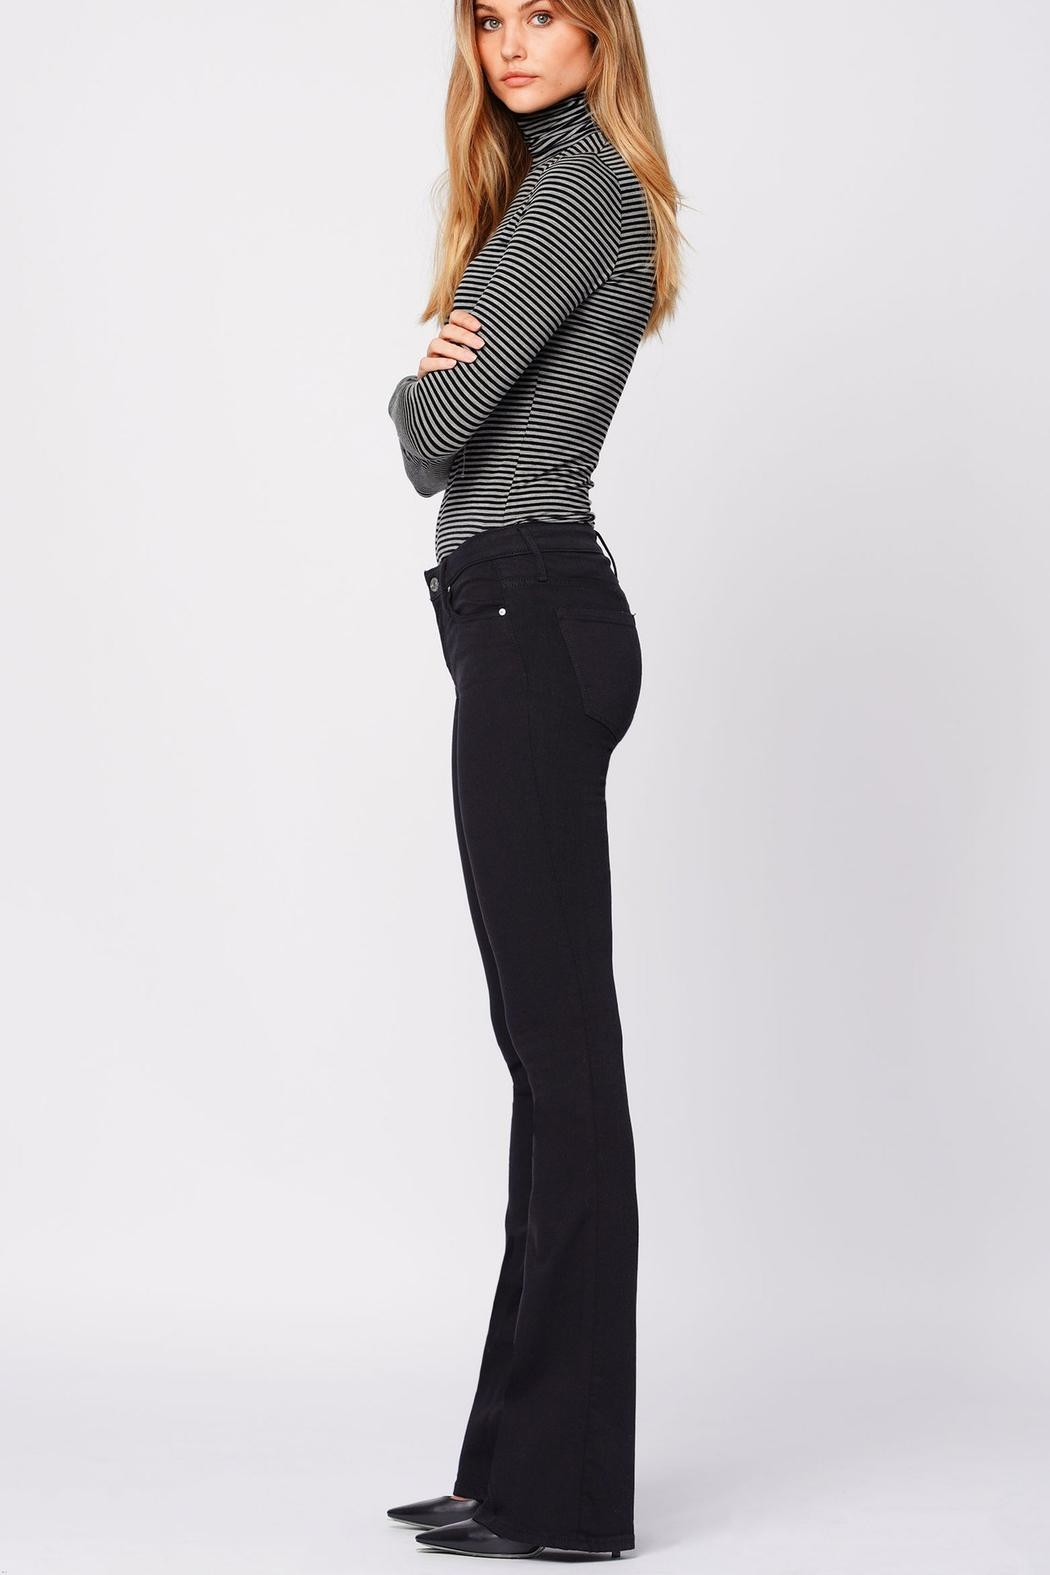 Black Orchid Denim Mia Mid-Rise Skinny-Flare - Back Cropped Image